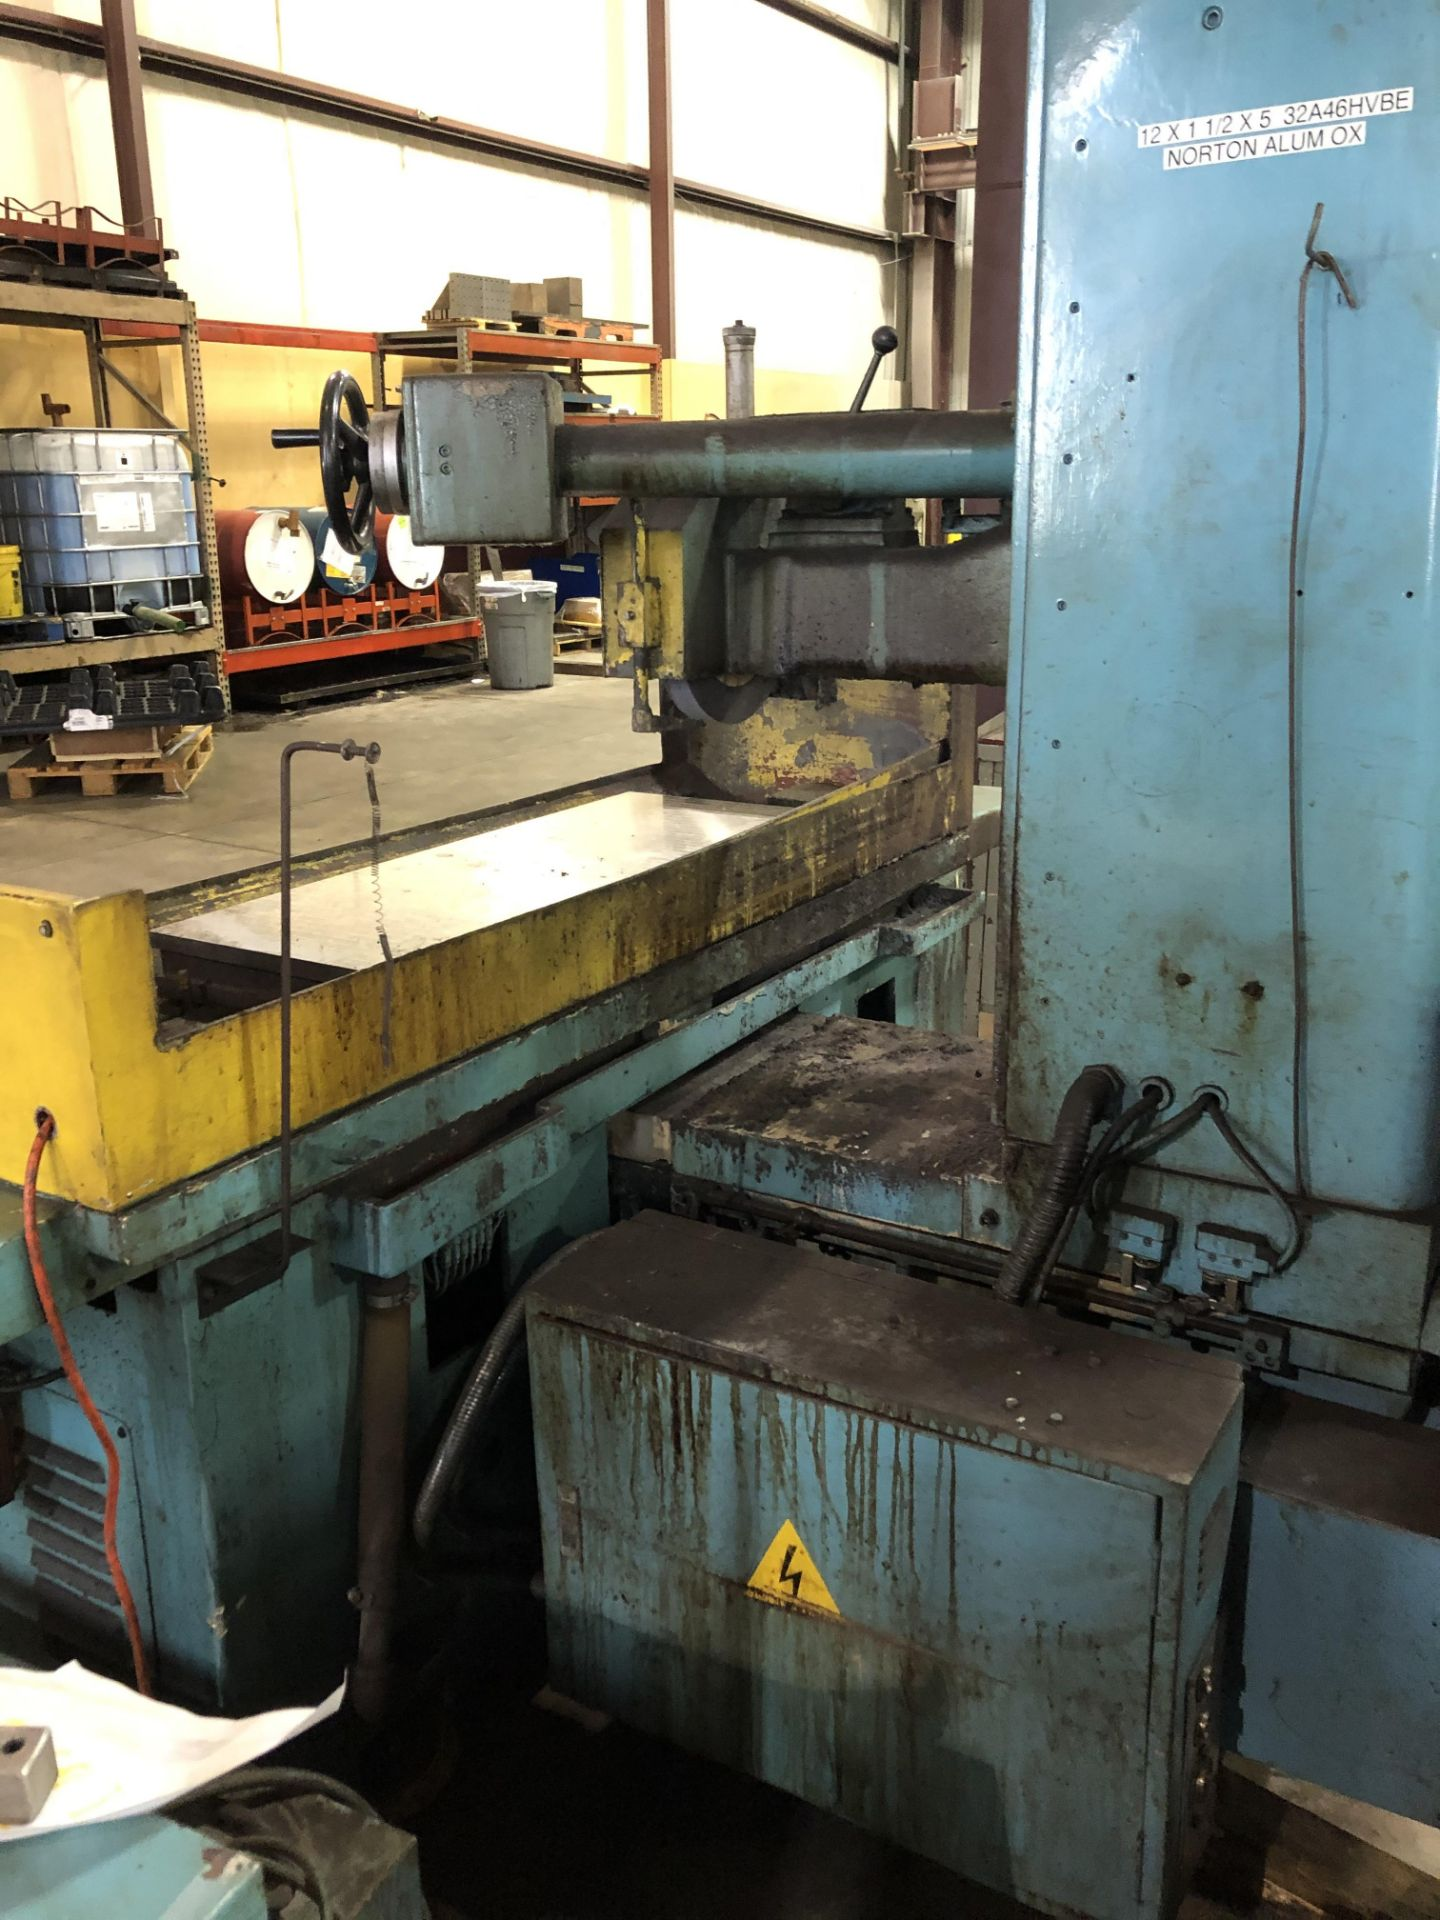 Kent KGS-410AHD SURFACE GRINDER - Image 13 of 16